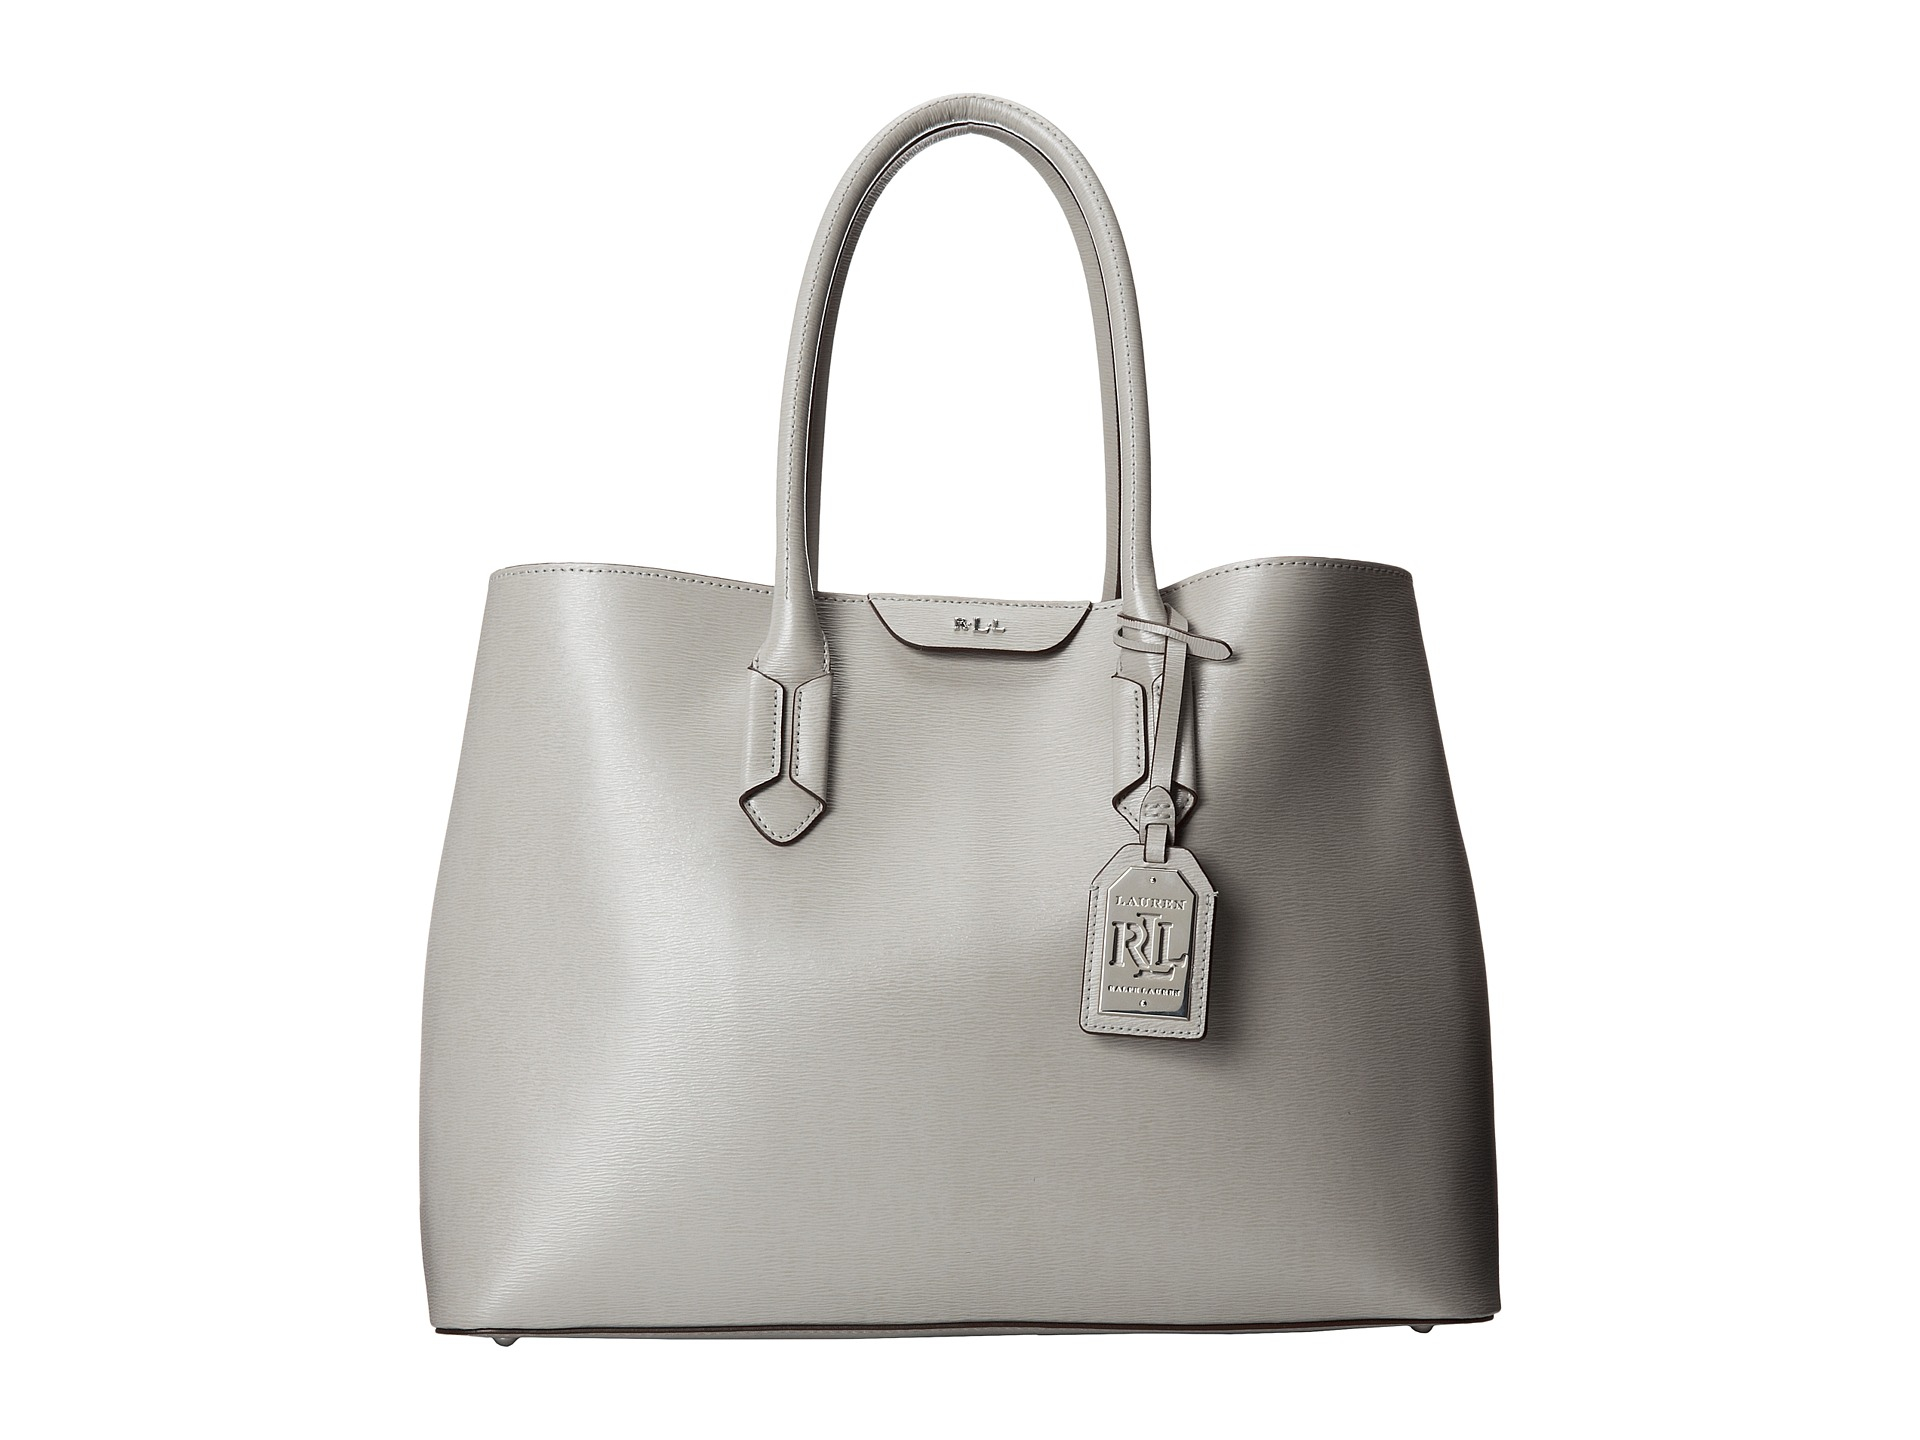 42c838a9e22a Lyst - Lauren by Ralph Lauren Tate City Tote in Gray